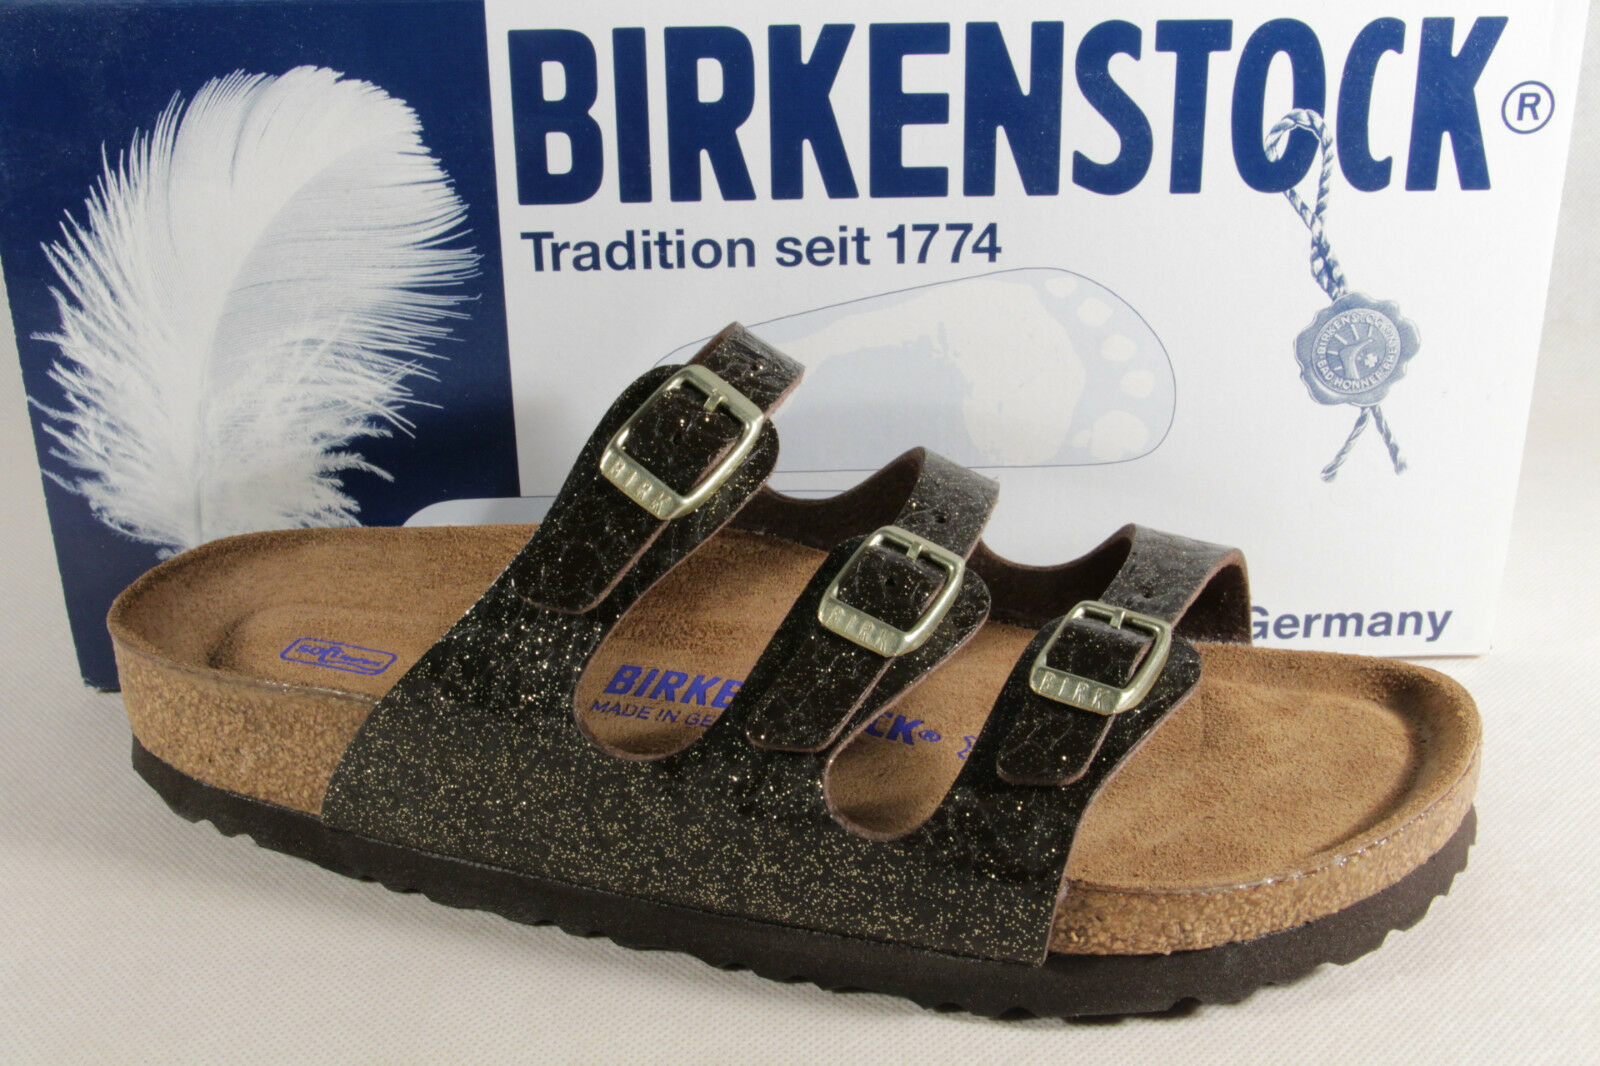 Birkenstock Ladies Mules Black/Gold Mules Black/Gold Mules 1006601 New afb93a